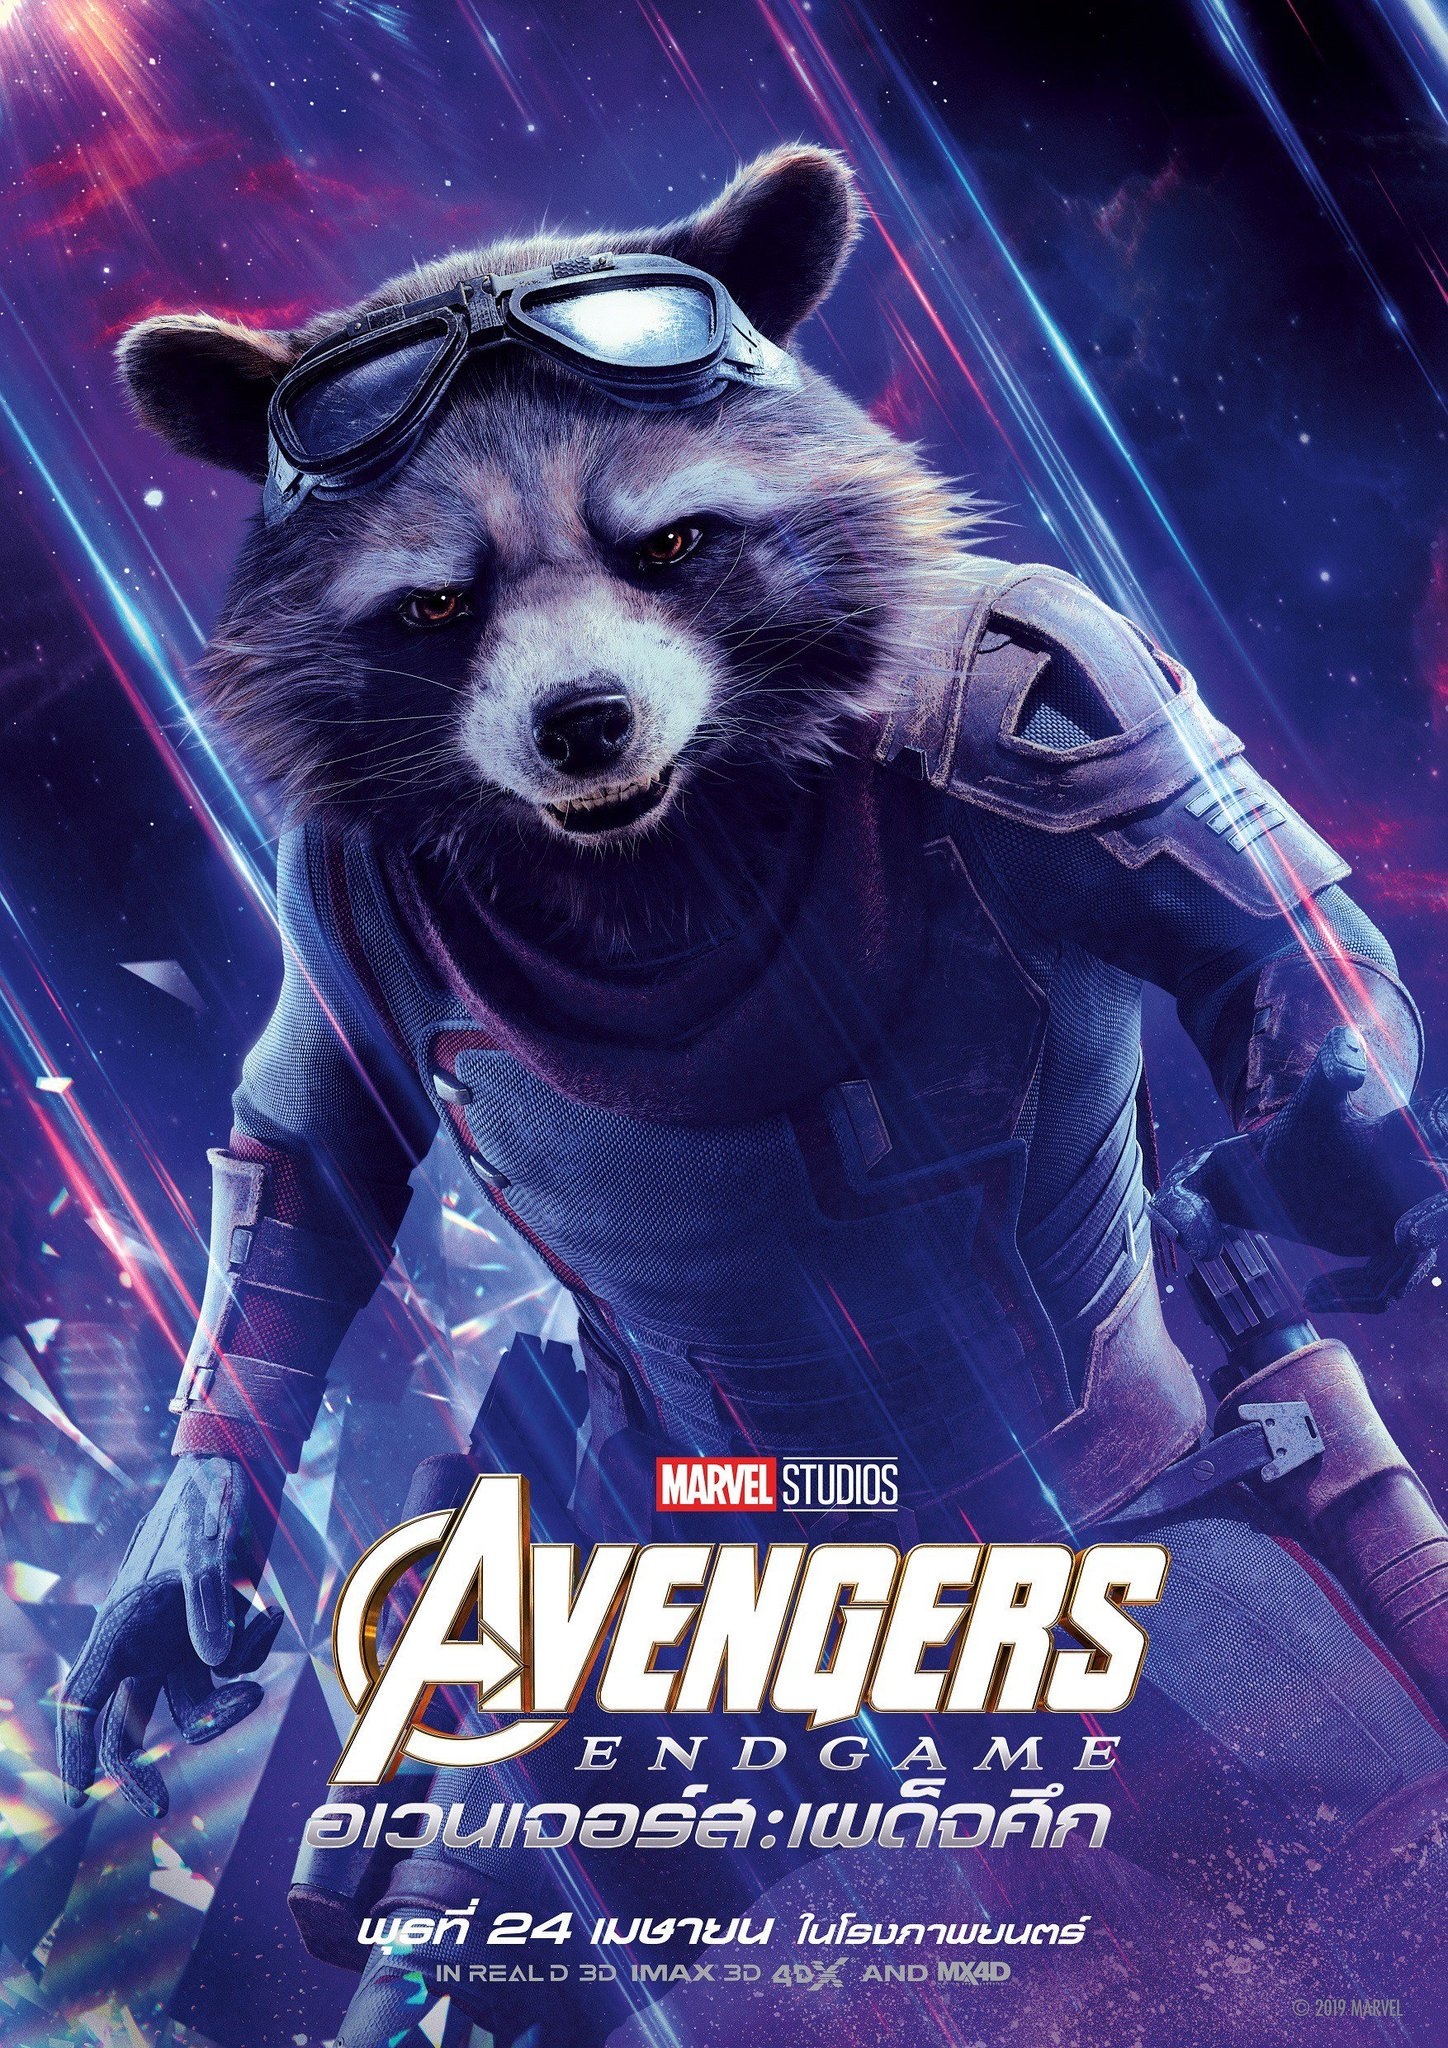 Avengers Endgame Character Posters Rocket Lyles Movie Files